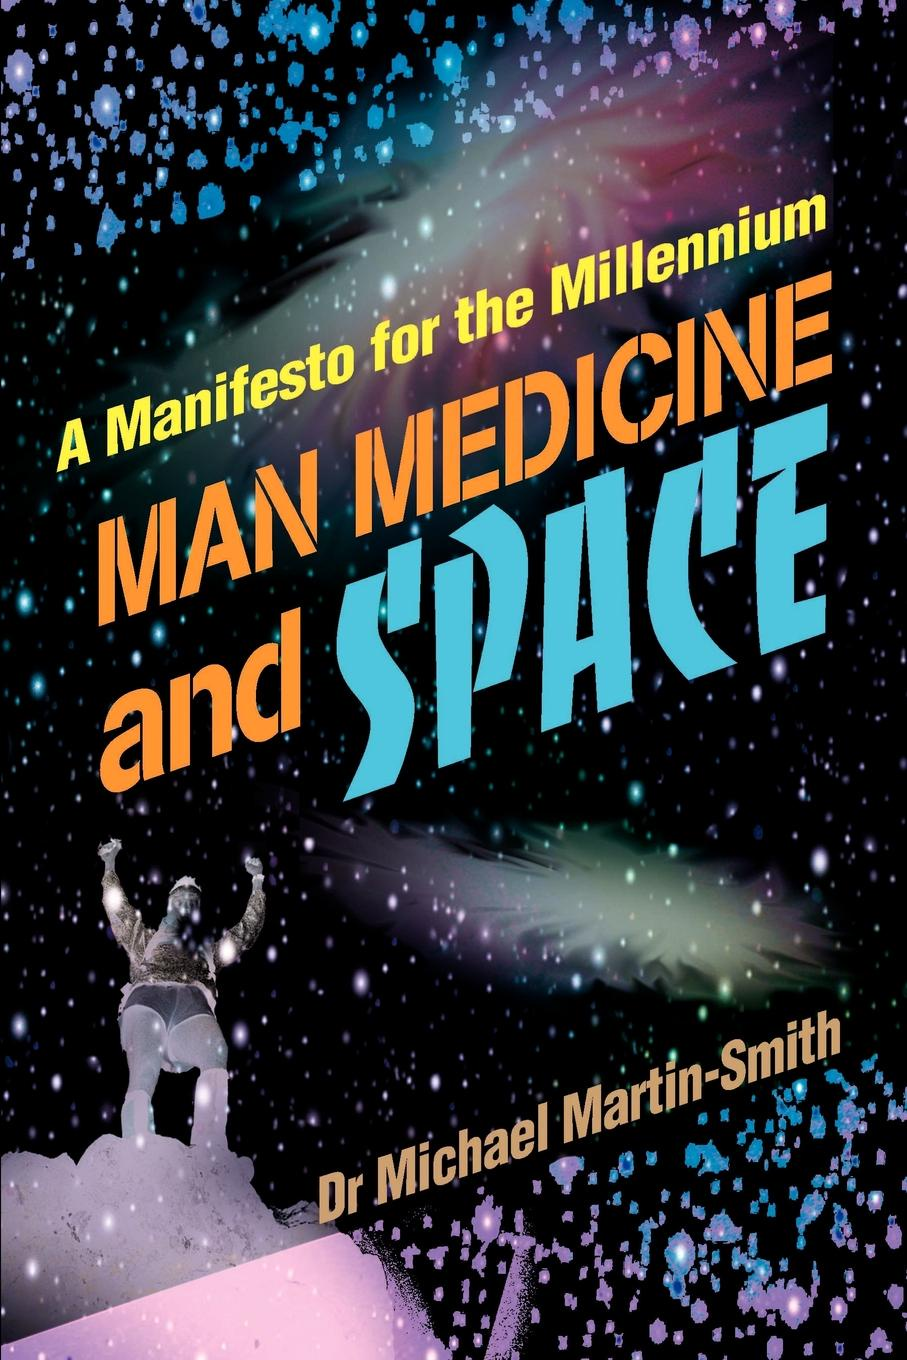 Michael Martin-Smith Man Medicine and Space. A Manifesto for the Millennium the romantic manifesto